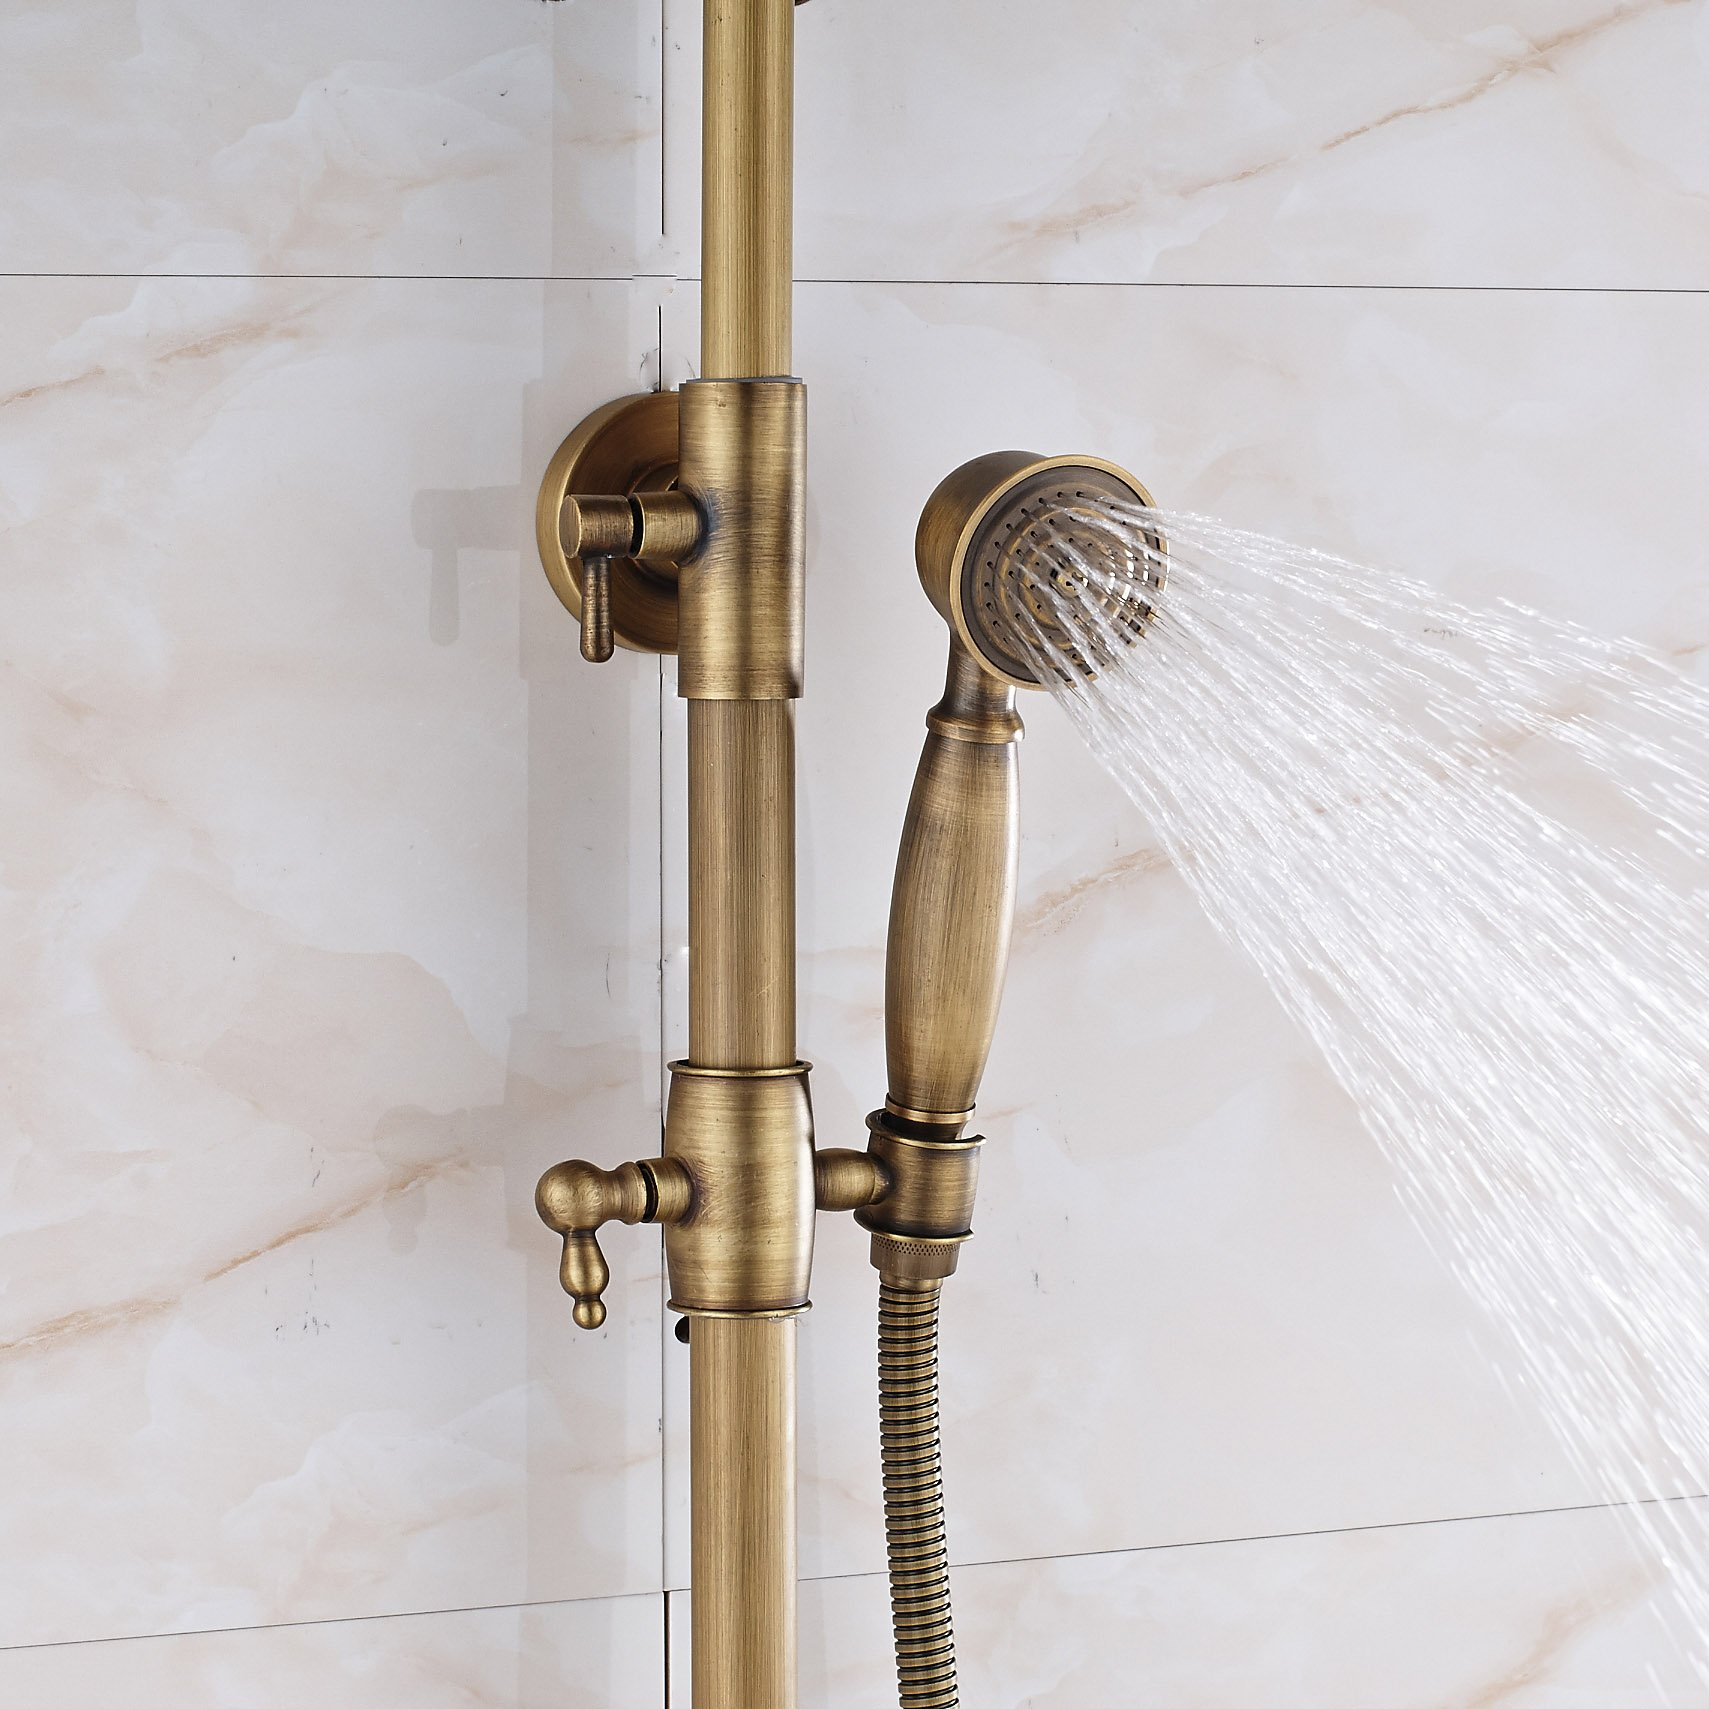 Rozin Bathroom 2 Knobs Mixer Rainfall Shower Faucet Units with Hand Spray Antique Brass by Rozin (Image #8)